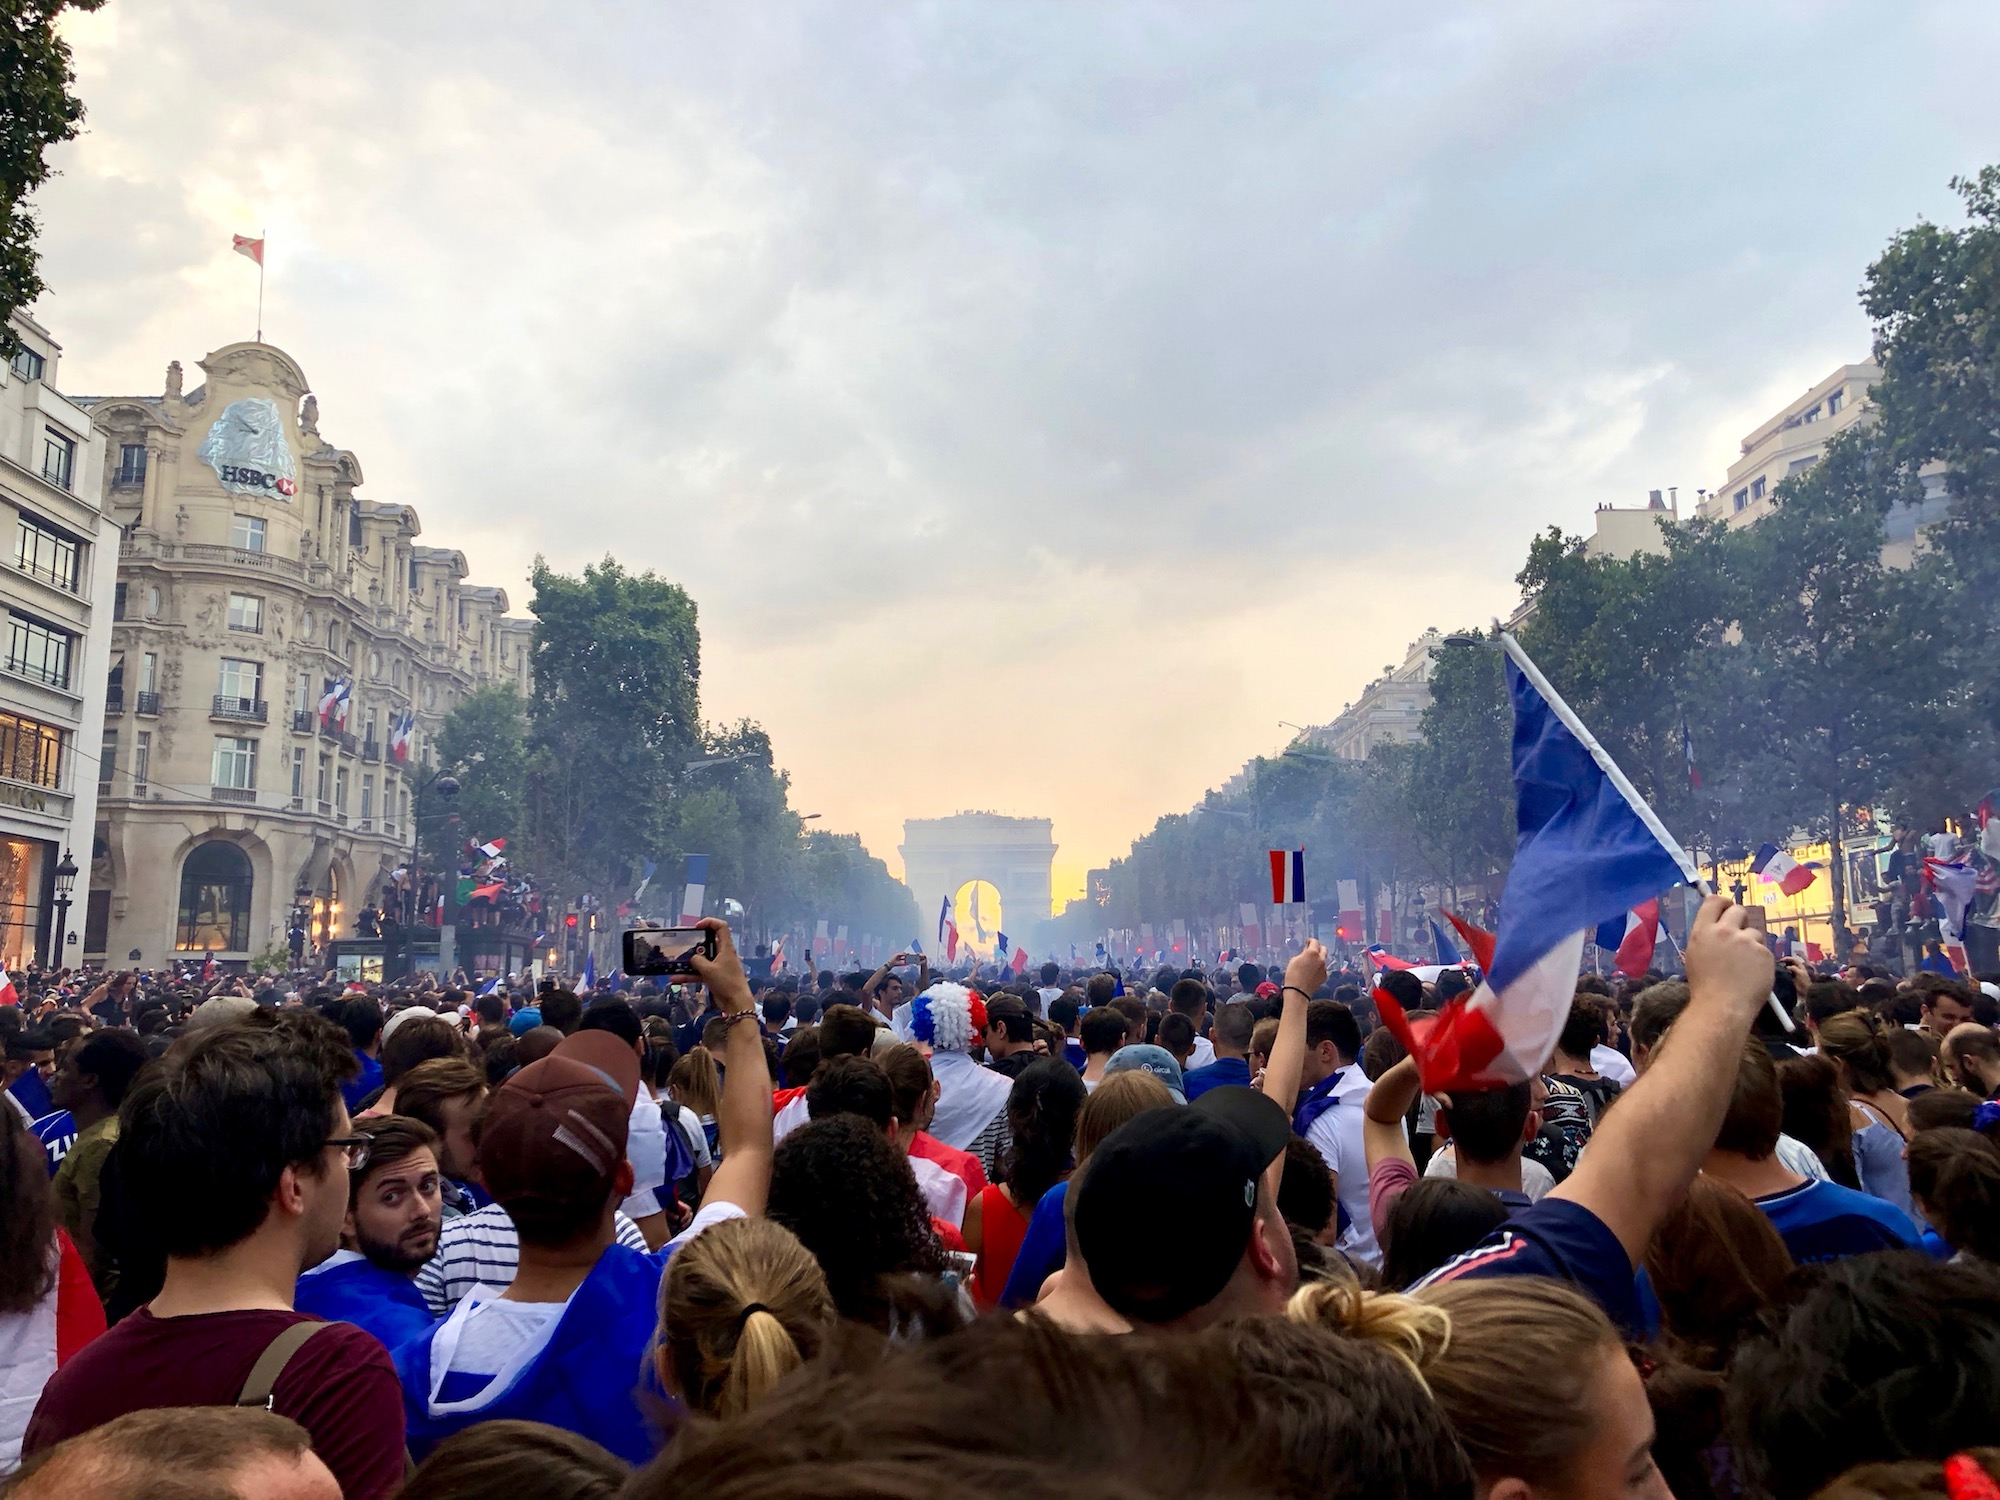 When France won the world cup in 2018, crowds celebrated on the Champs Elysées, waving French flags with the Arc de Triomphe in the background.